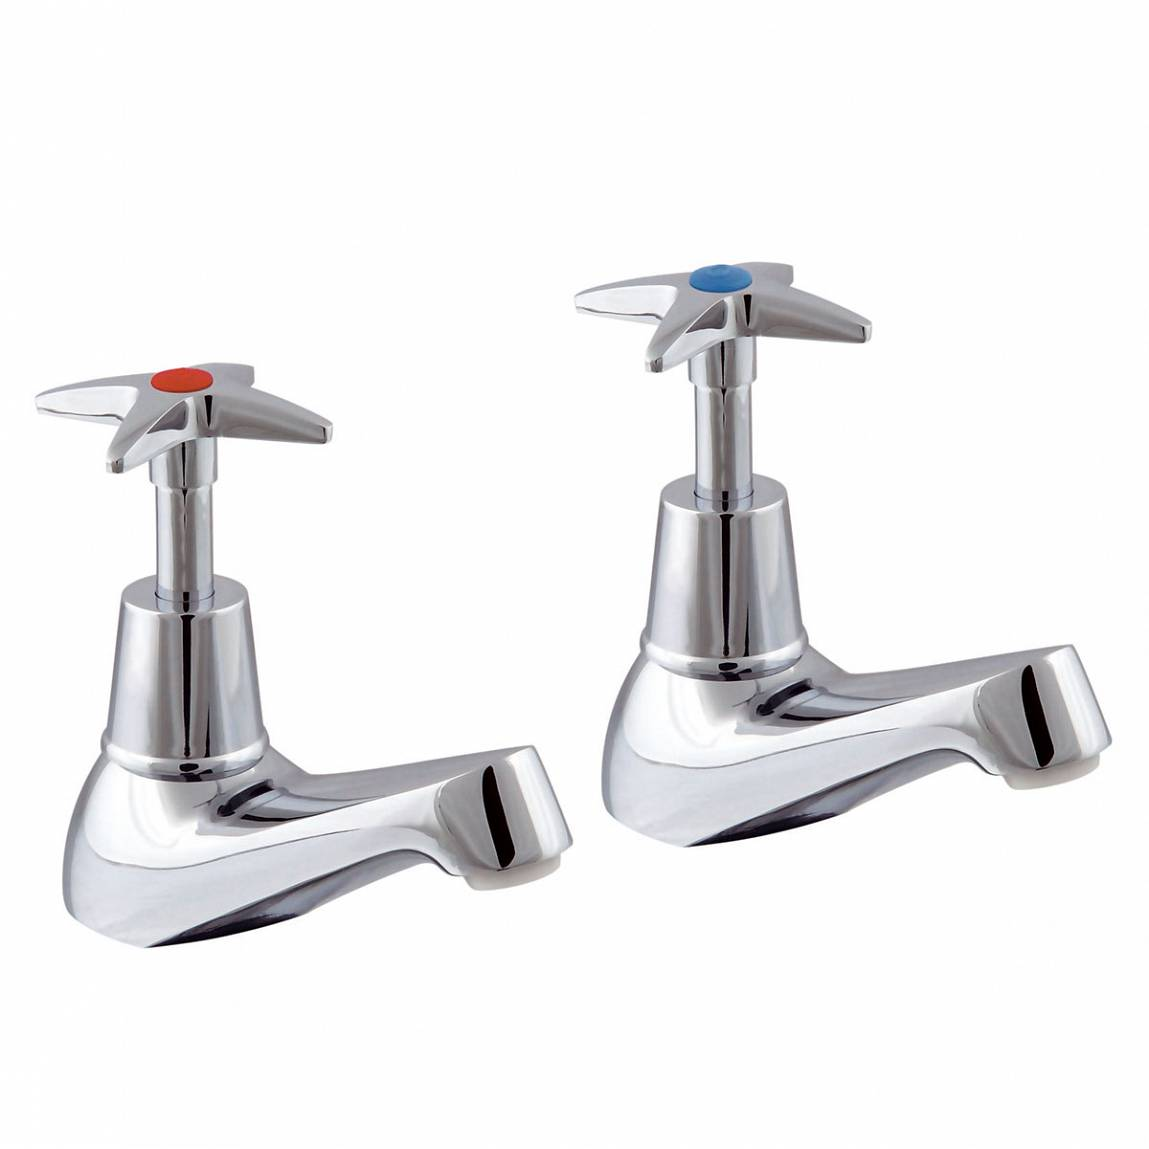 "Image of Bibury 3/4"" Bath Taps with Cross Handle"